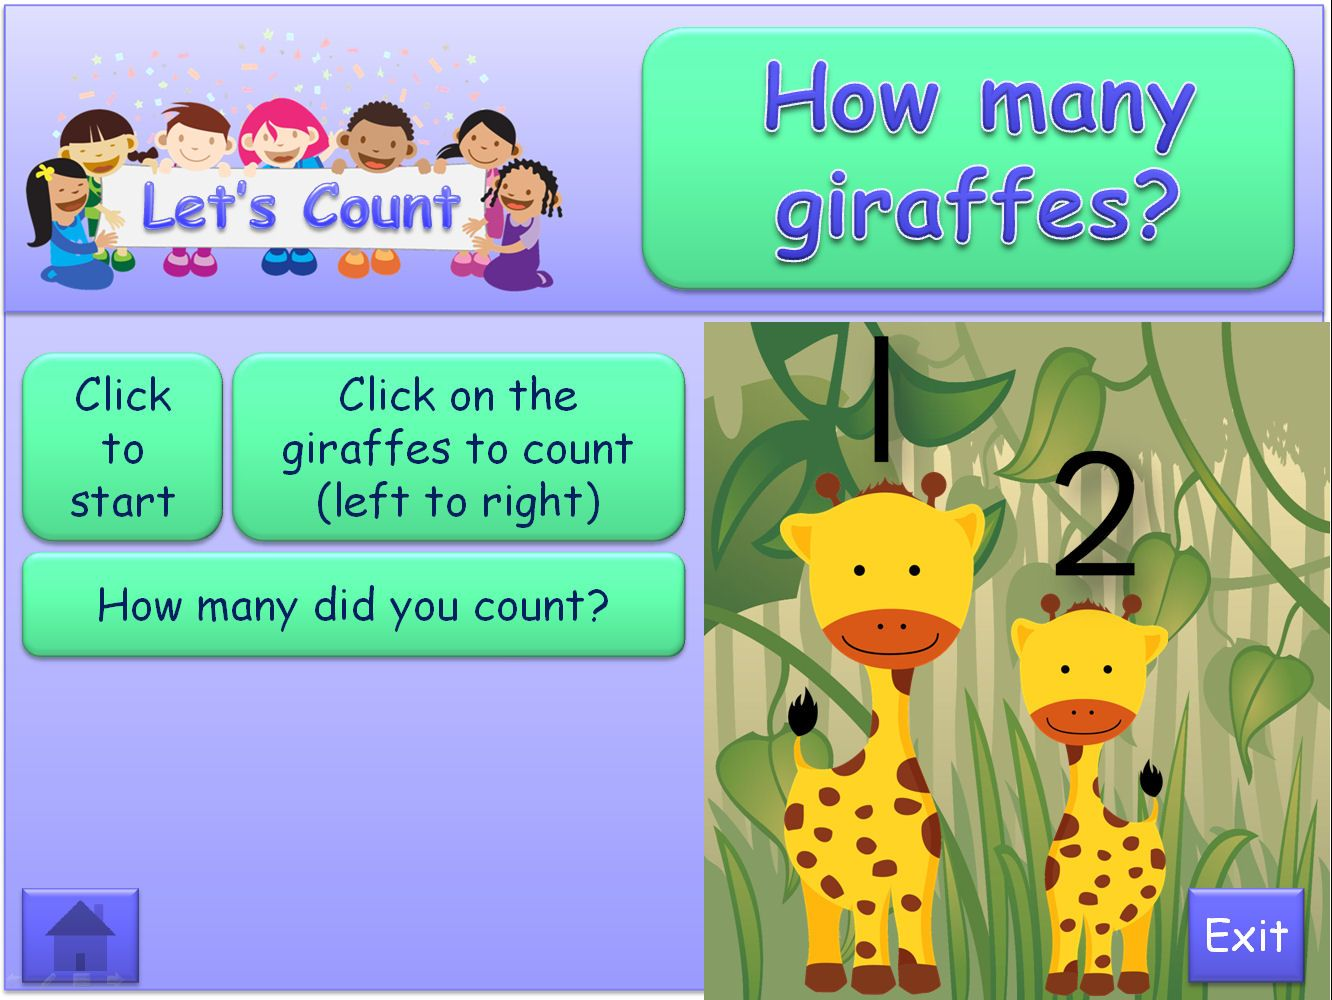 Let's Count in the Jungle, 1-5: Interactive PowerPoint that uses animation and action buttons. Sassoon Numbers and clear, colourful illustrations. Written text is in Comic Sans font